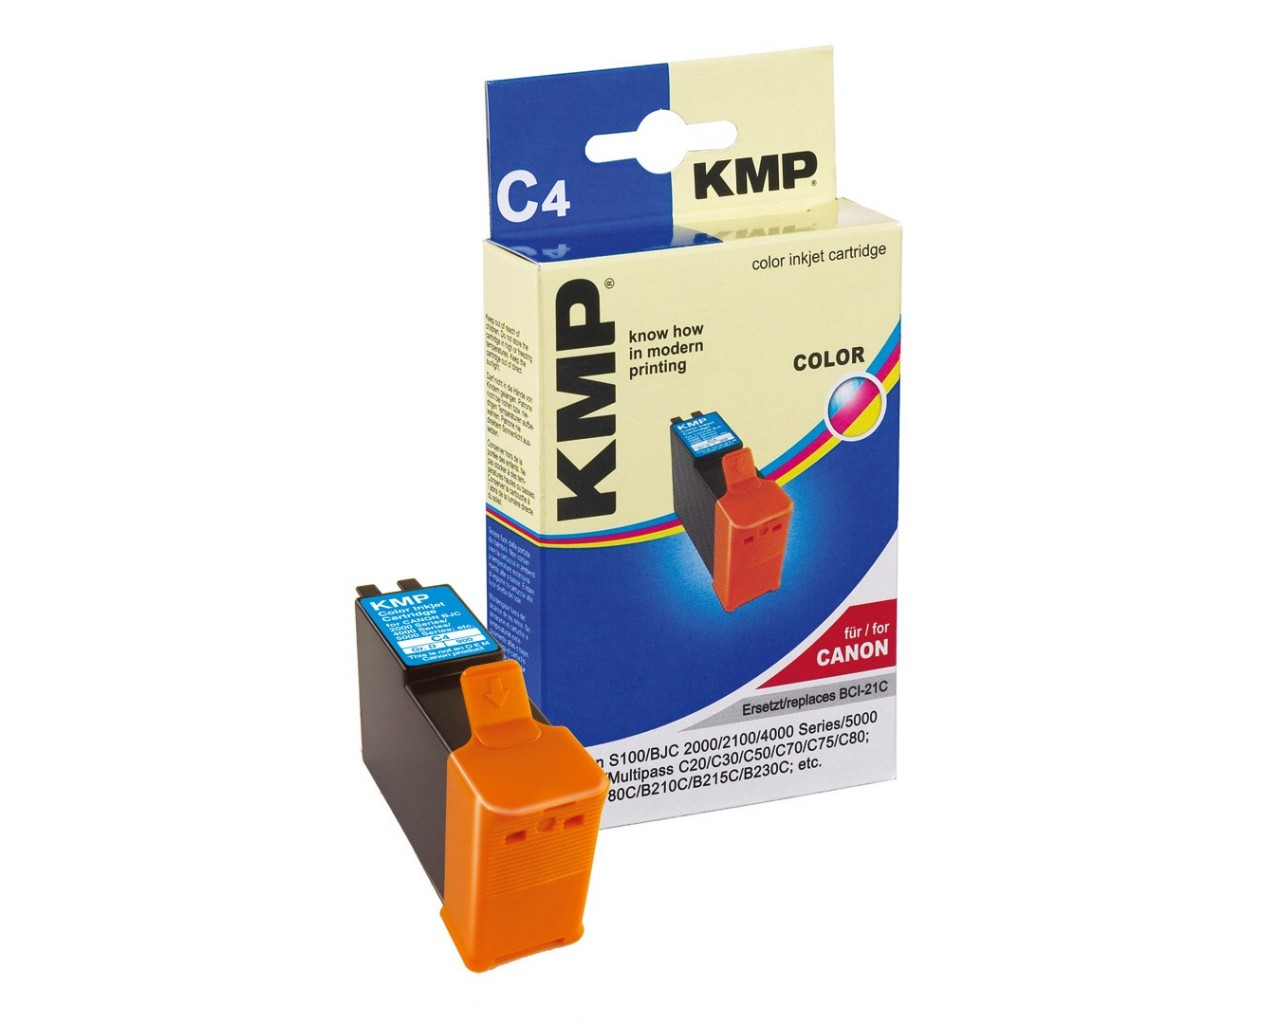 KMP Canon C4 ink cartridge color 15ml